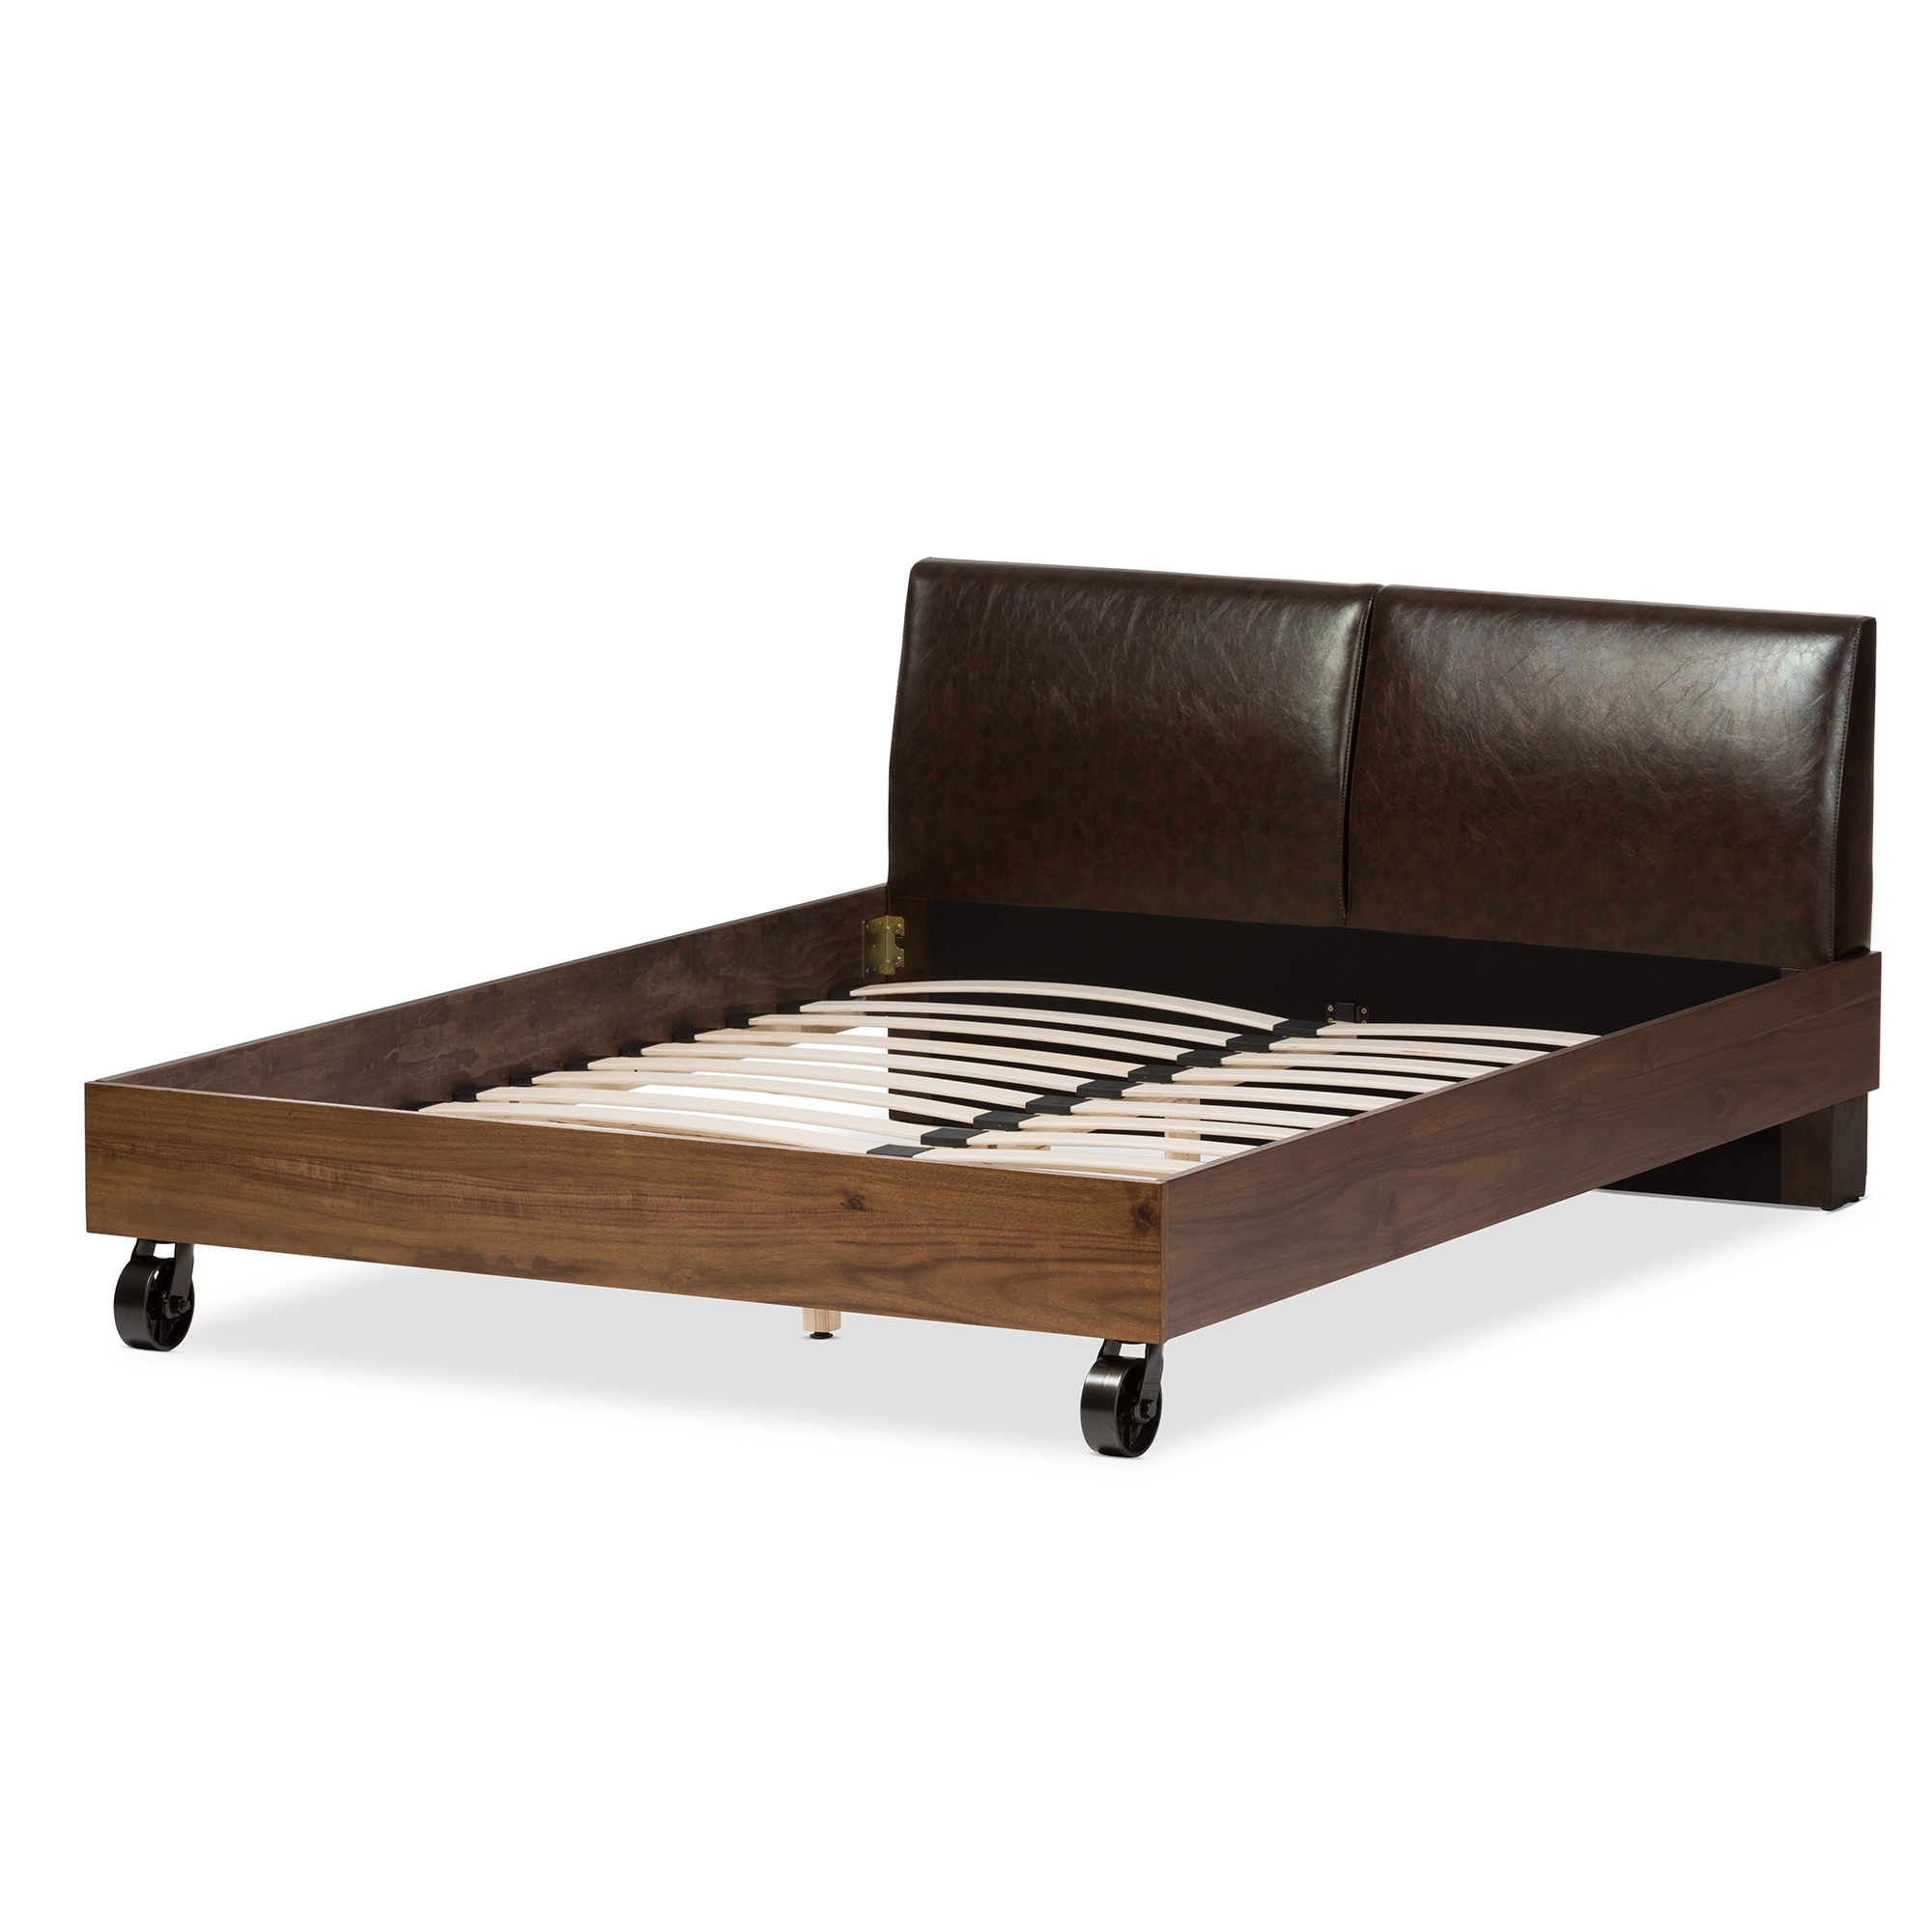 baxton studio brooke rustic industrial walnut wood distressed faux leather dark bronze metal full size platform - Platform Bed Full